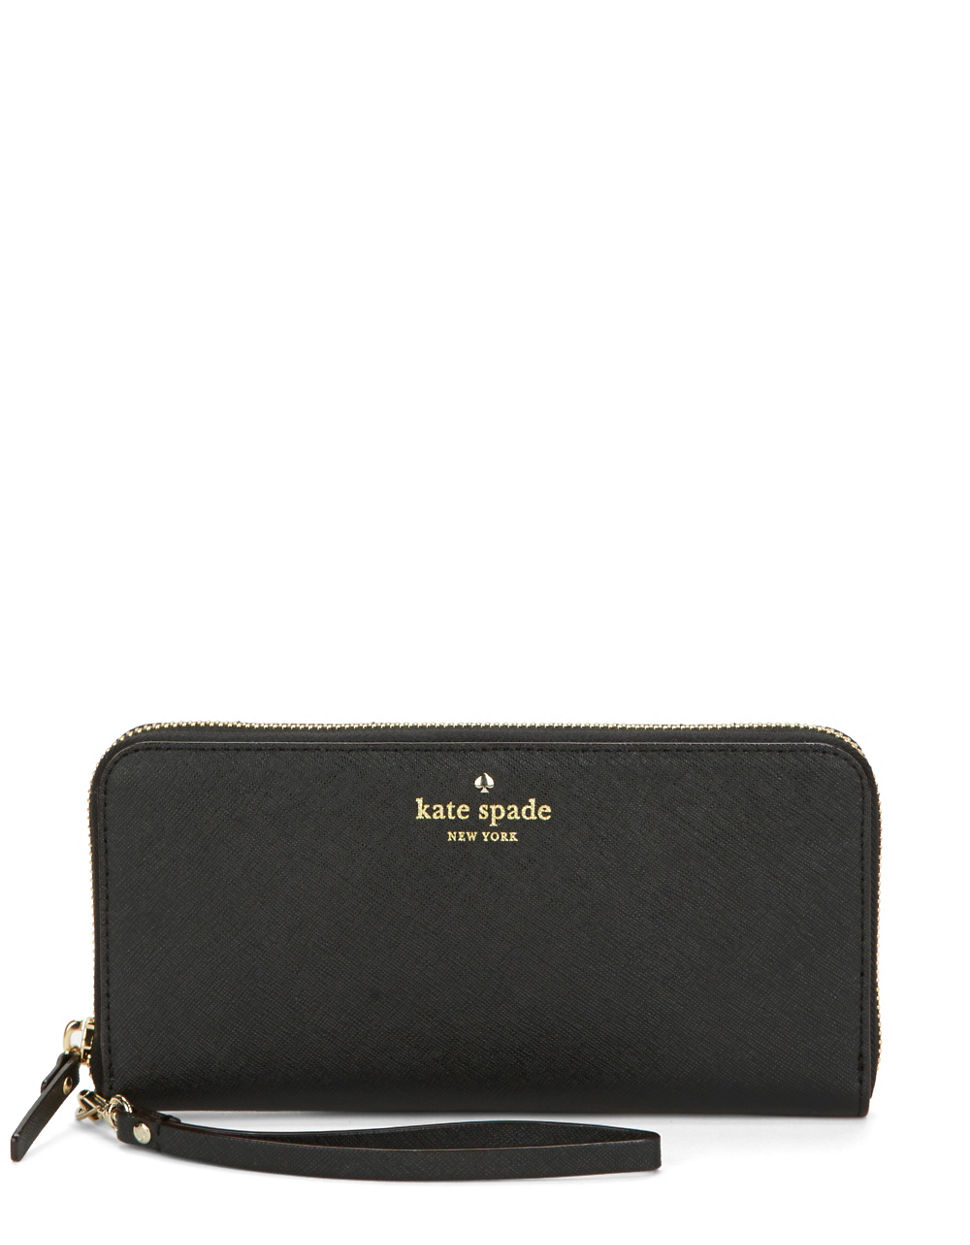 Kate Spade New York Leather Iphone  Wallet